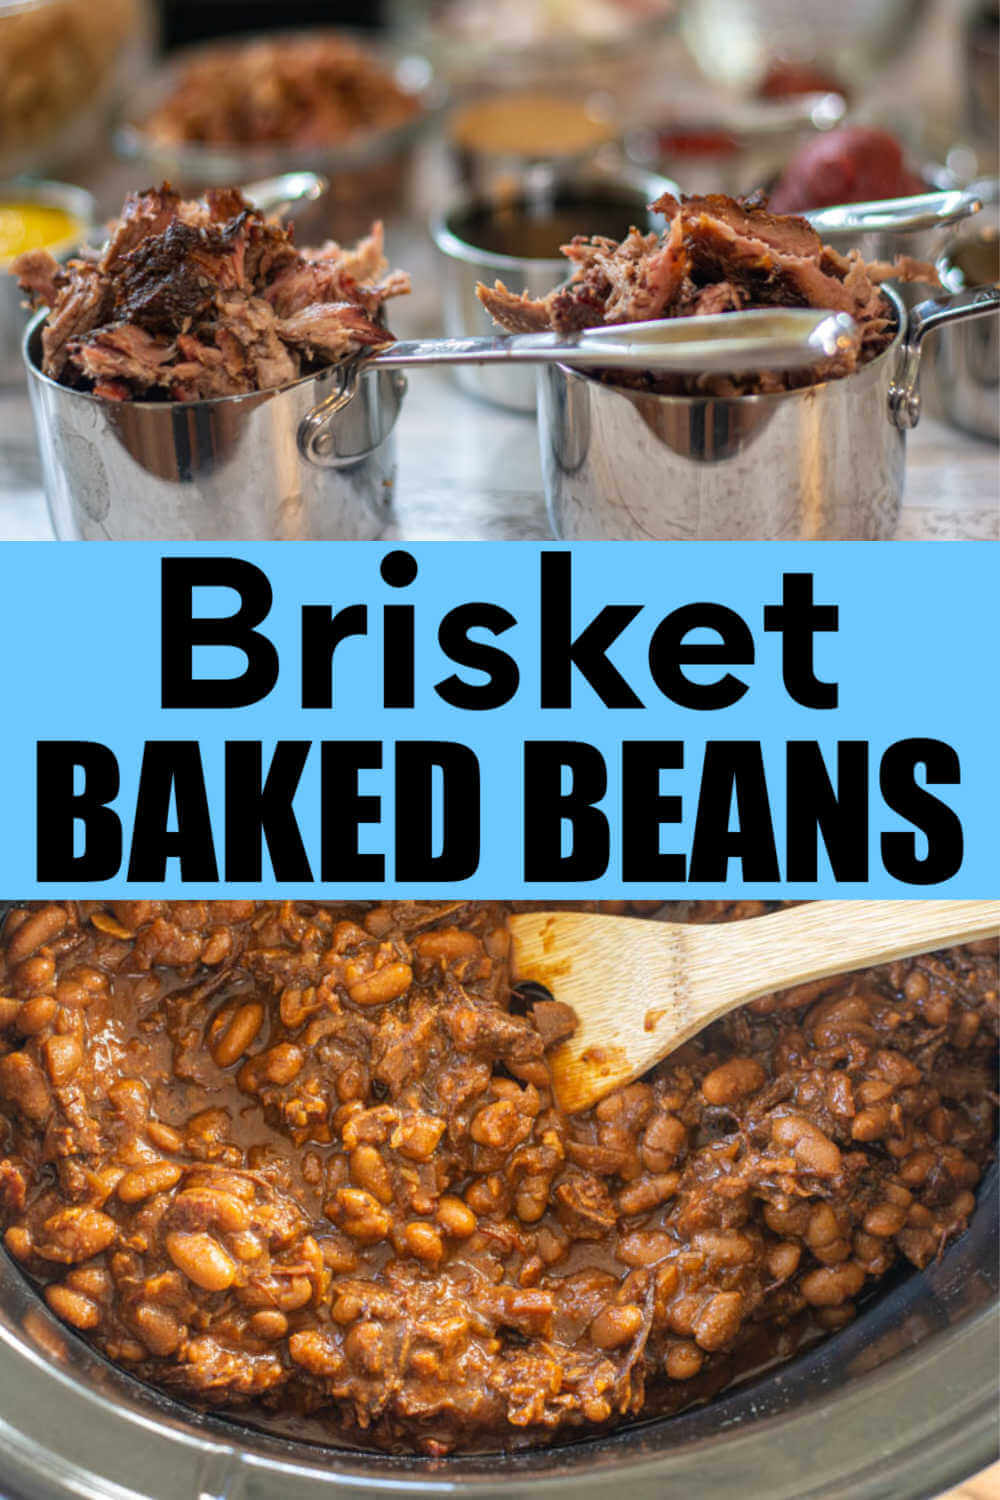 Guinness Brisket Baked Beans in a Slow Cooker